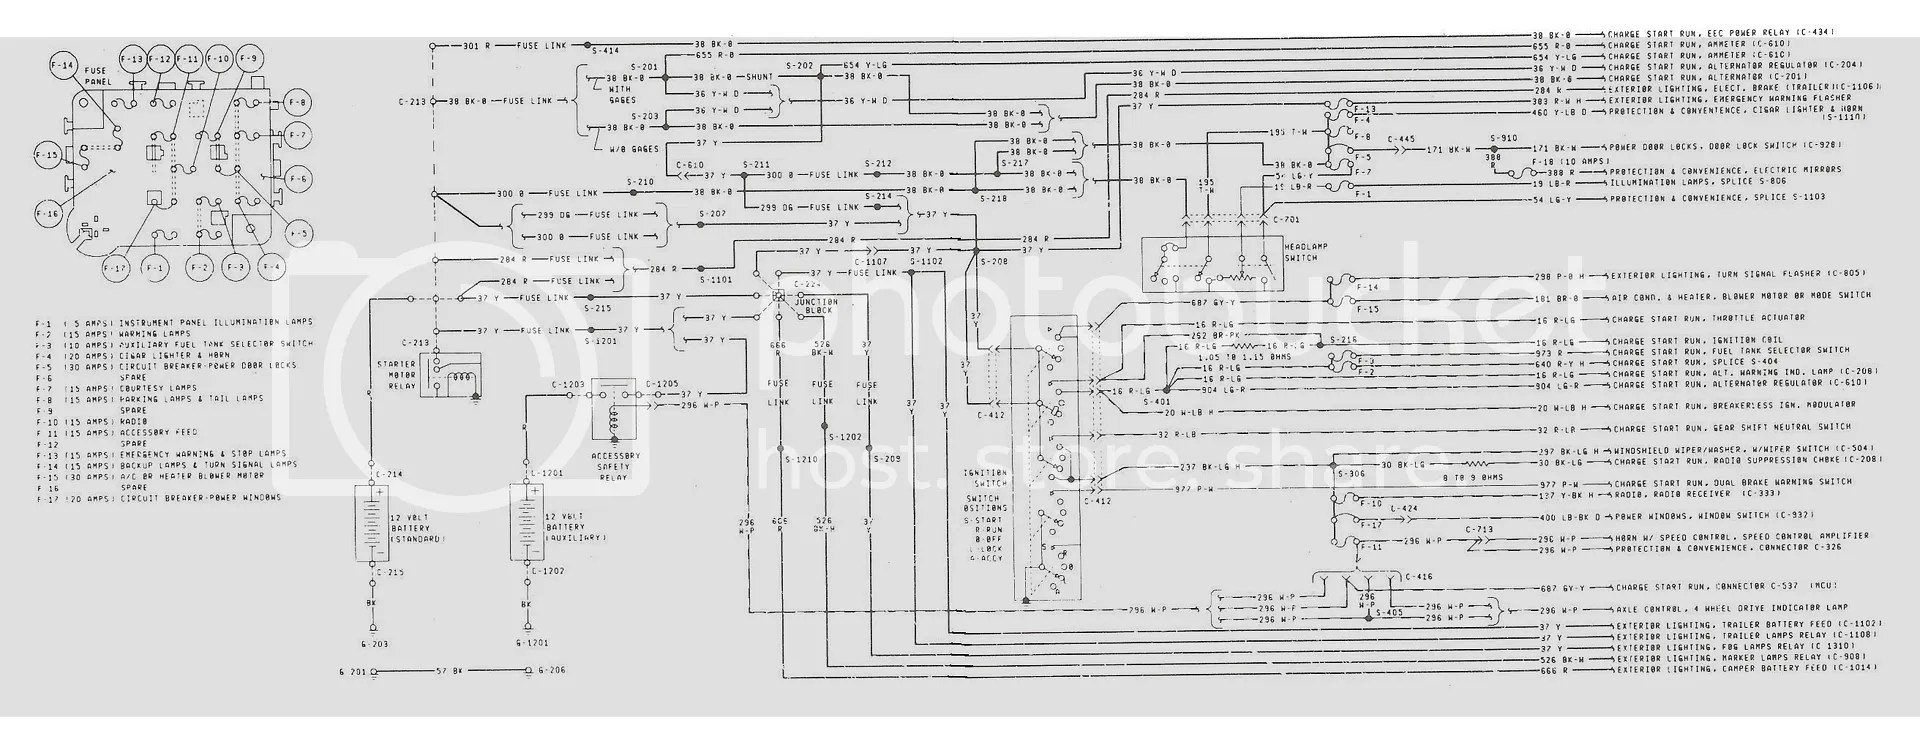 hight resolution of 1981 ford f 150 starter wiring diagram wiring library1981 ford f 150 starter wiring diagram